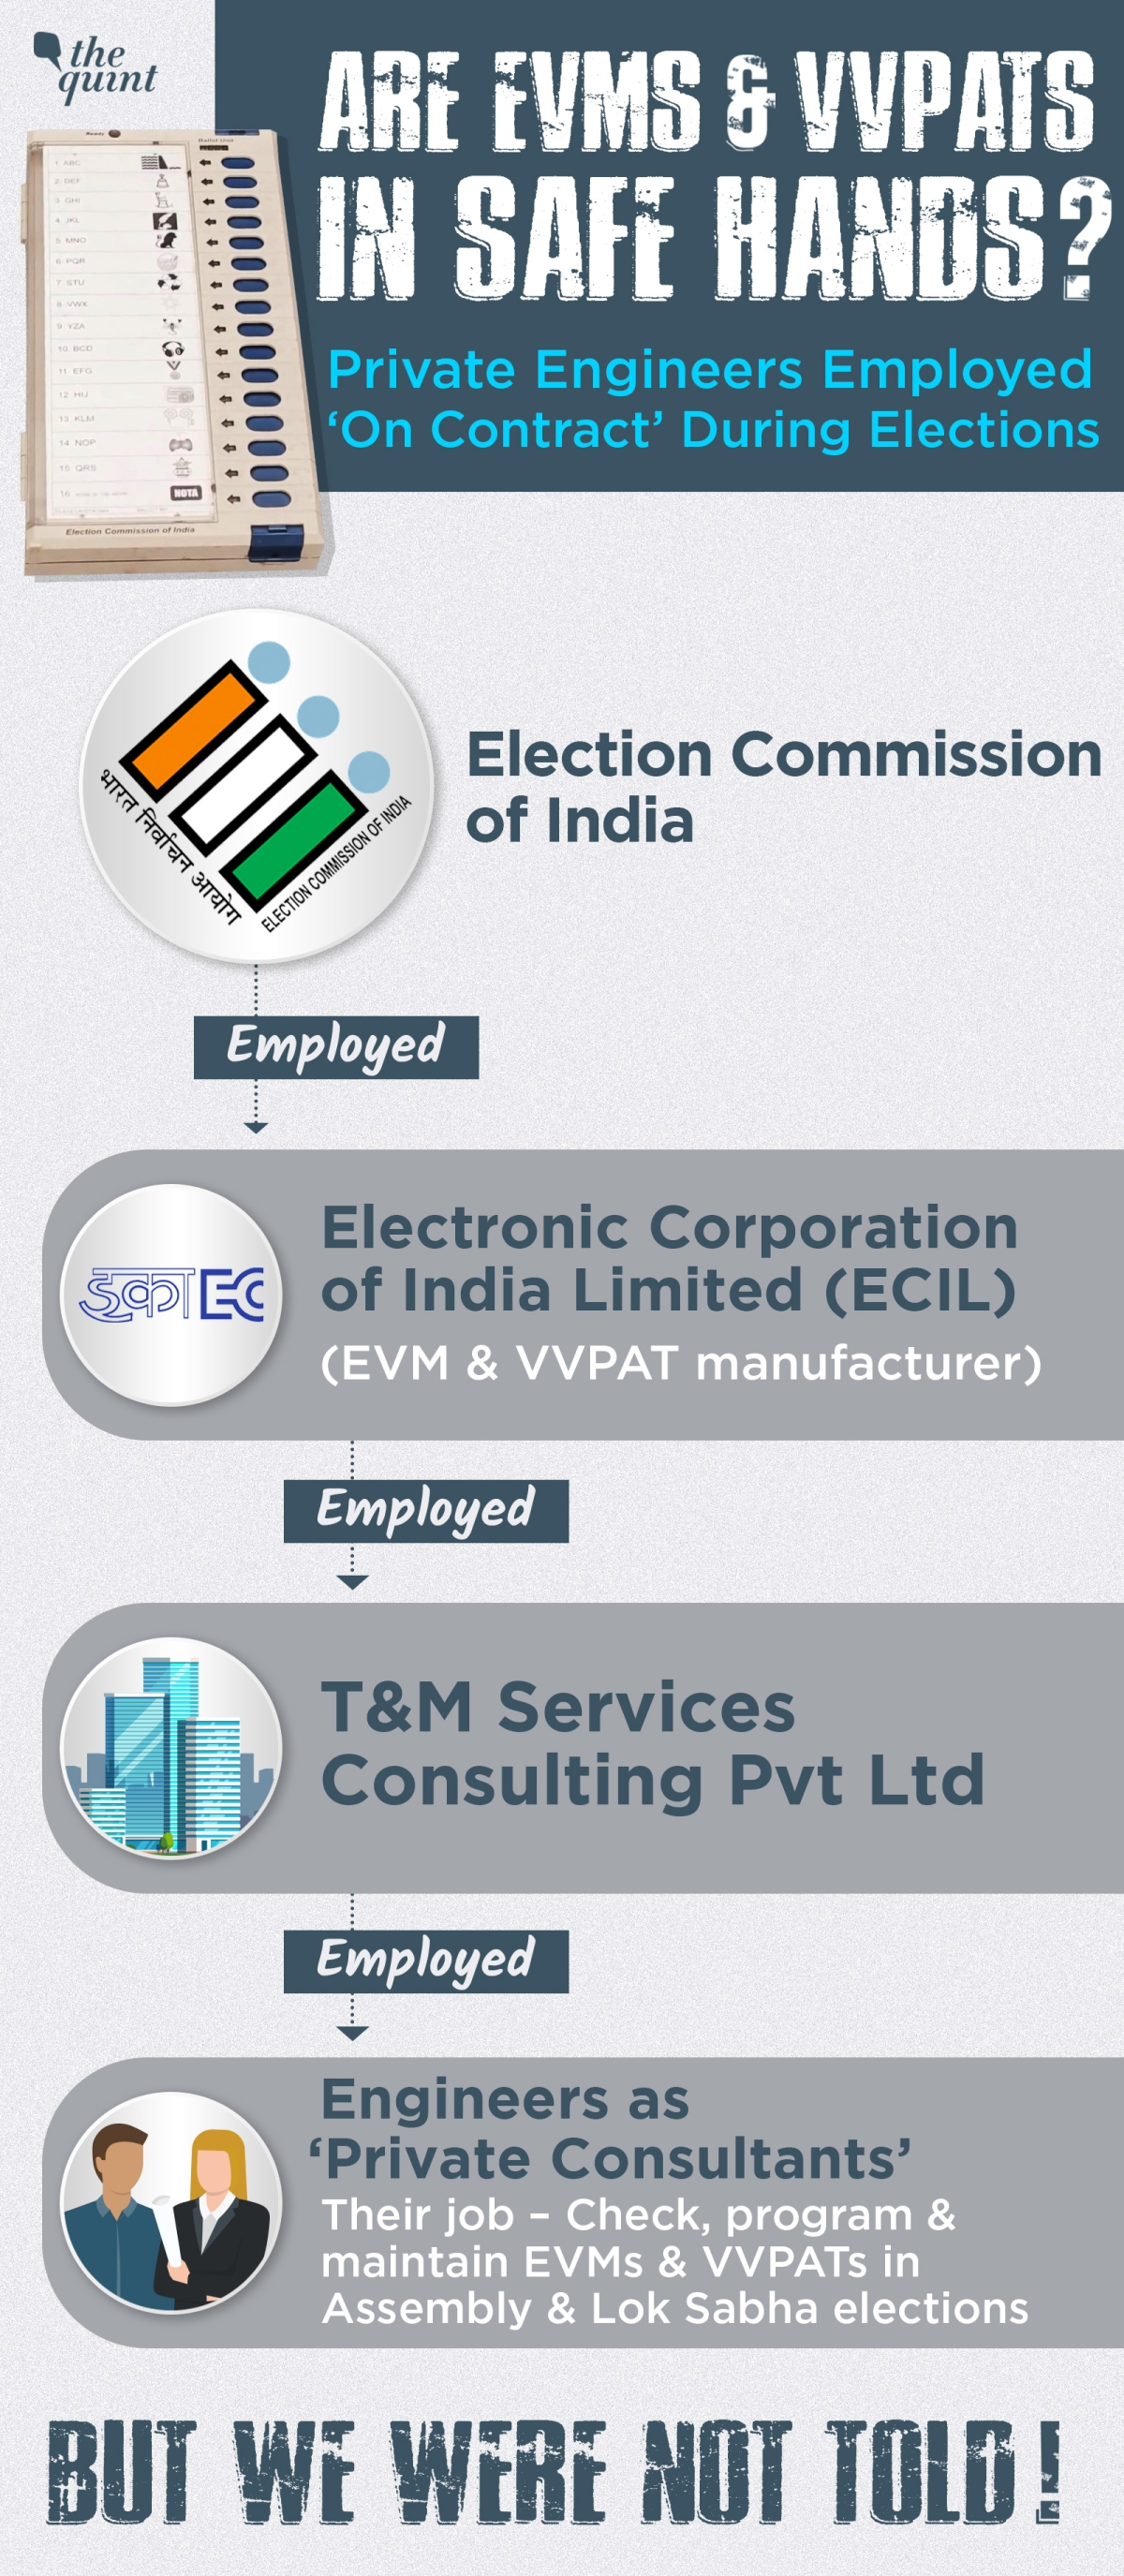 ECIL engages private consulting engineers from a Mumbai based private company T&M Services Consulting Private Limited